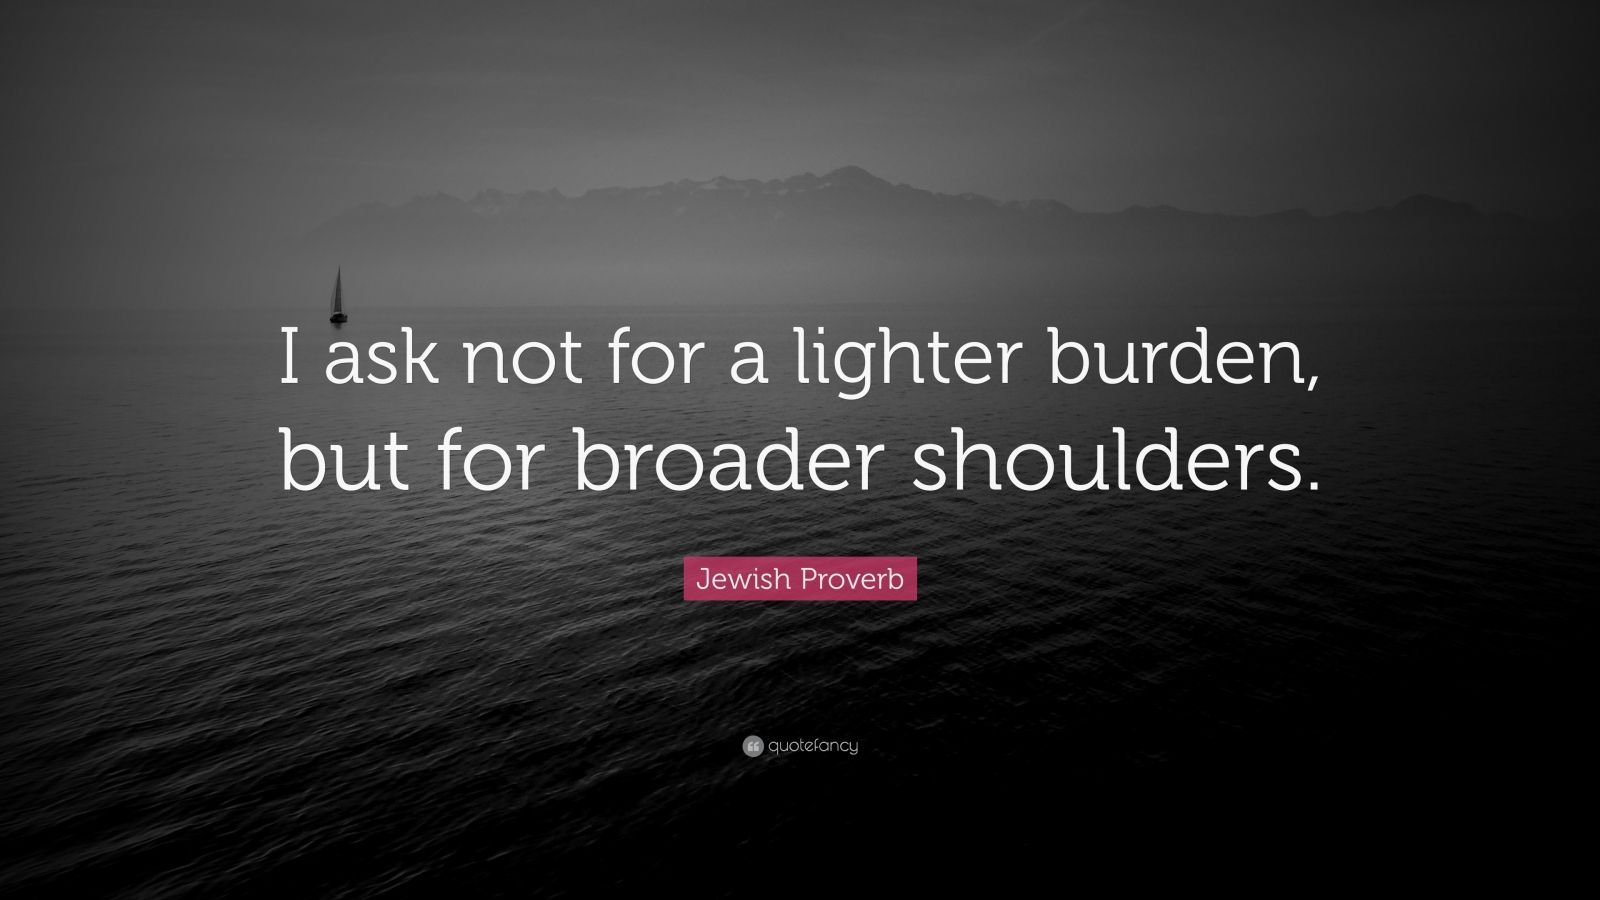 """Jewish Proverb Quote: """"I ask not for a lighter burden, but for broader shoulders."""""""